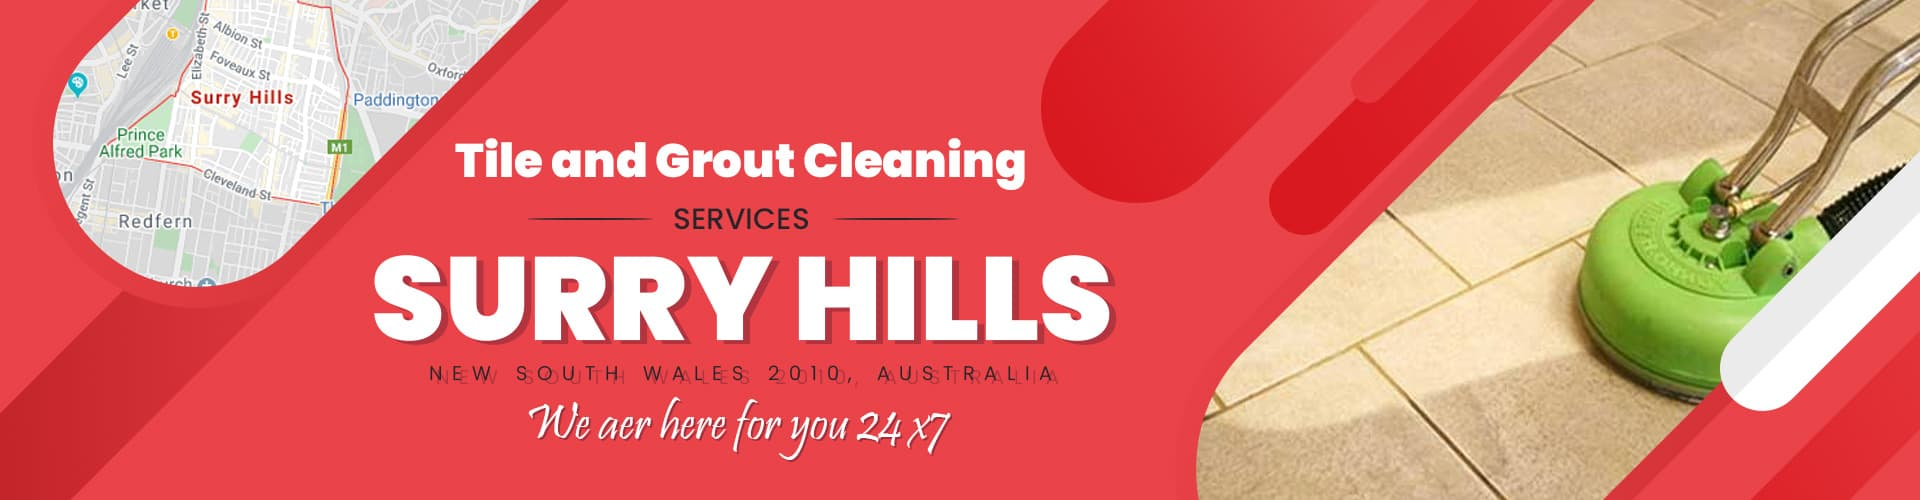 Tile Grout Cleaning Services Surry Hills